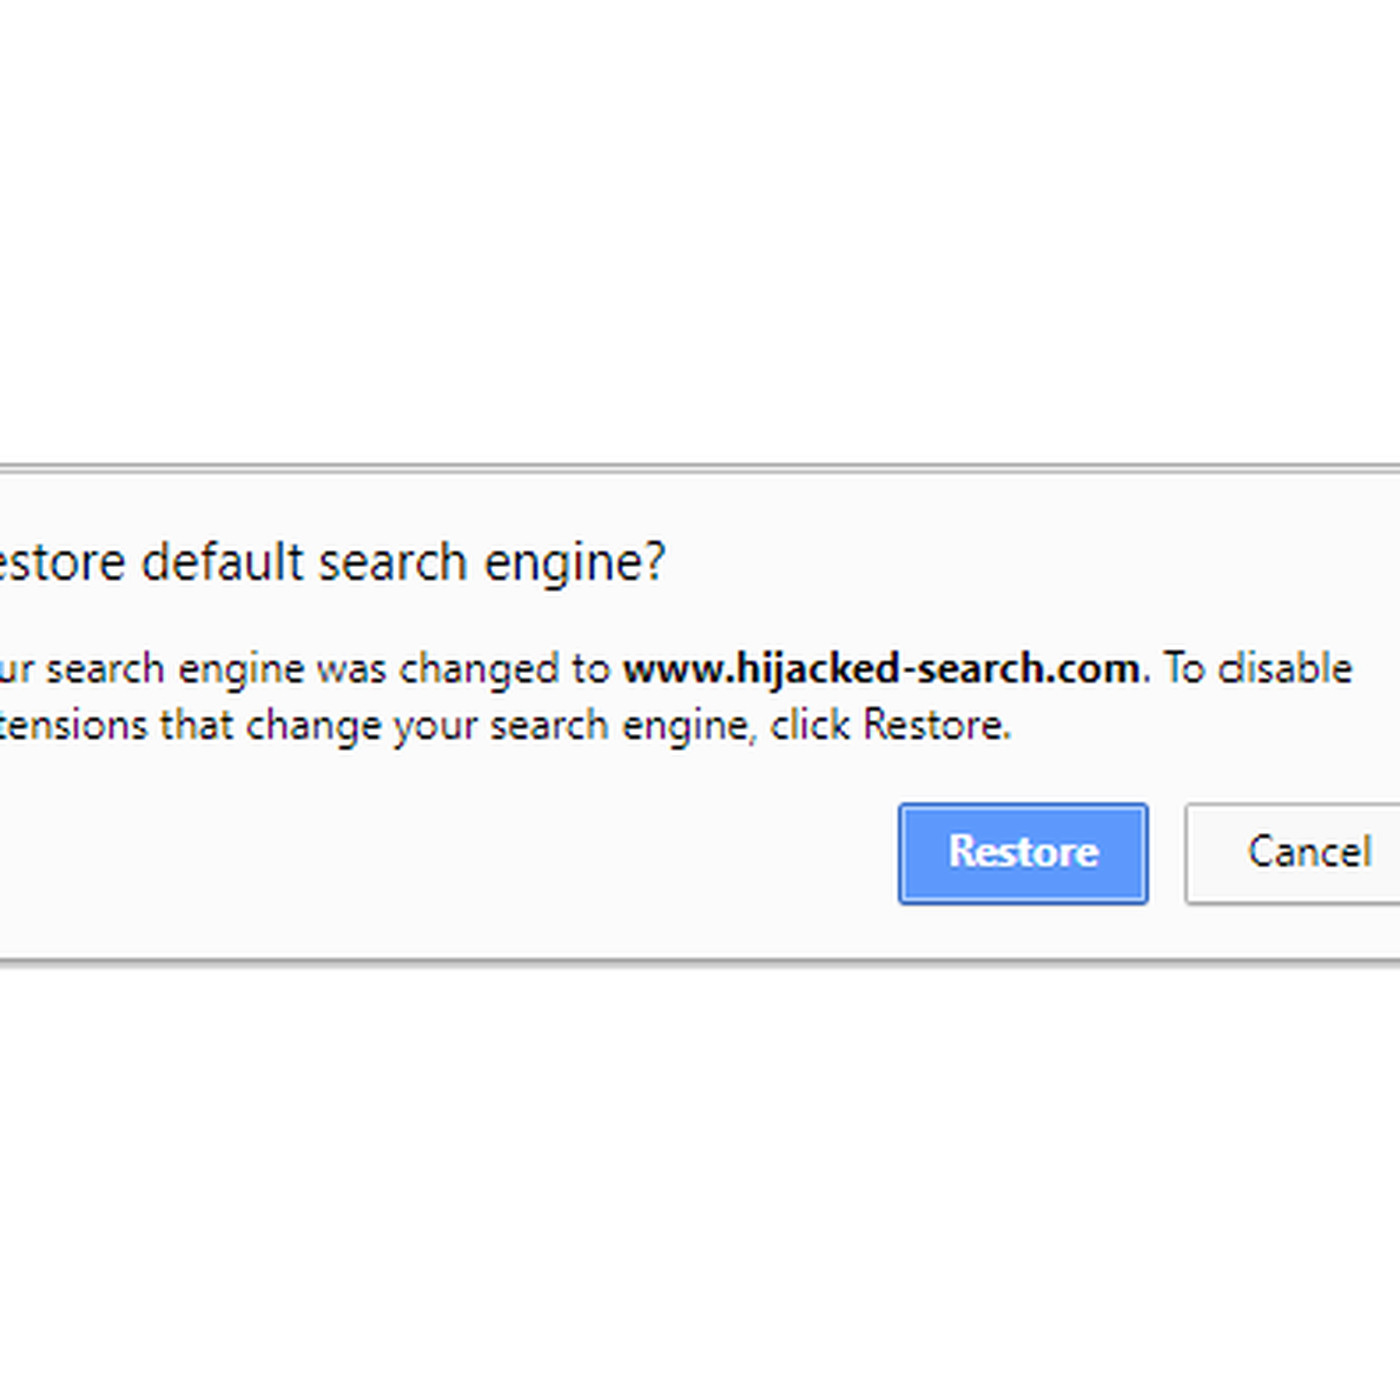 Google adds some basic antivirus features to Chrome for Windows